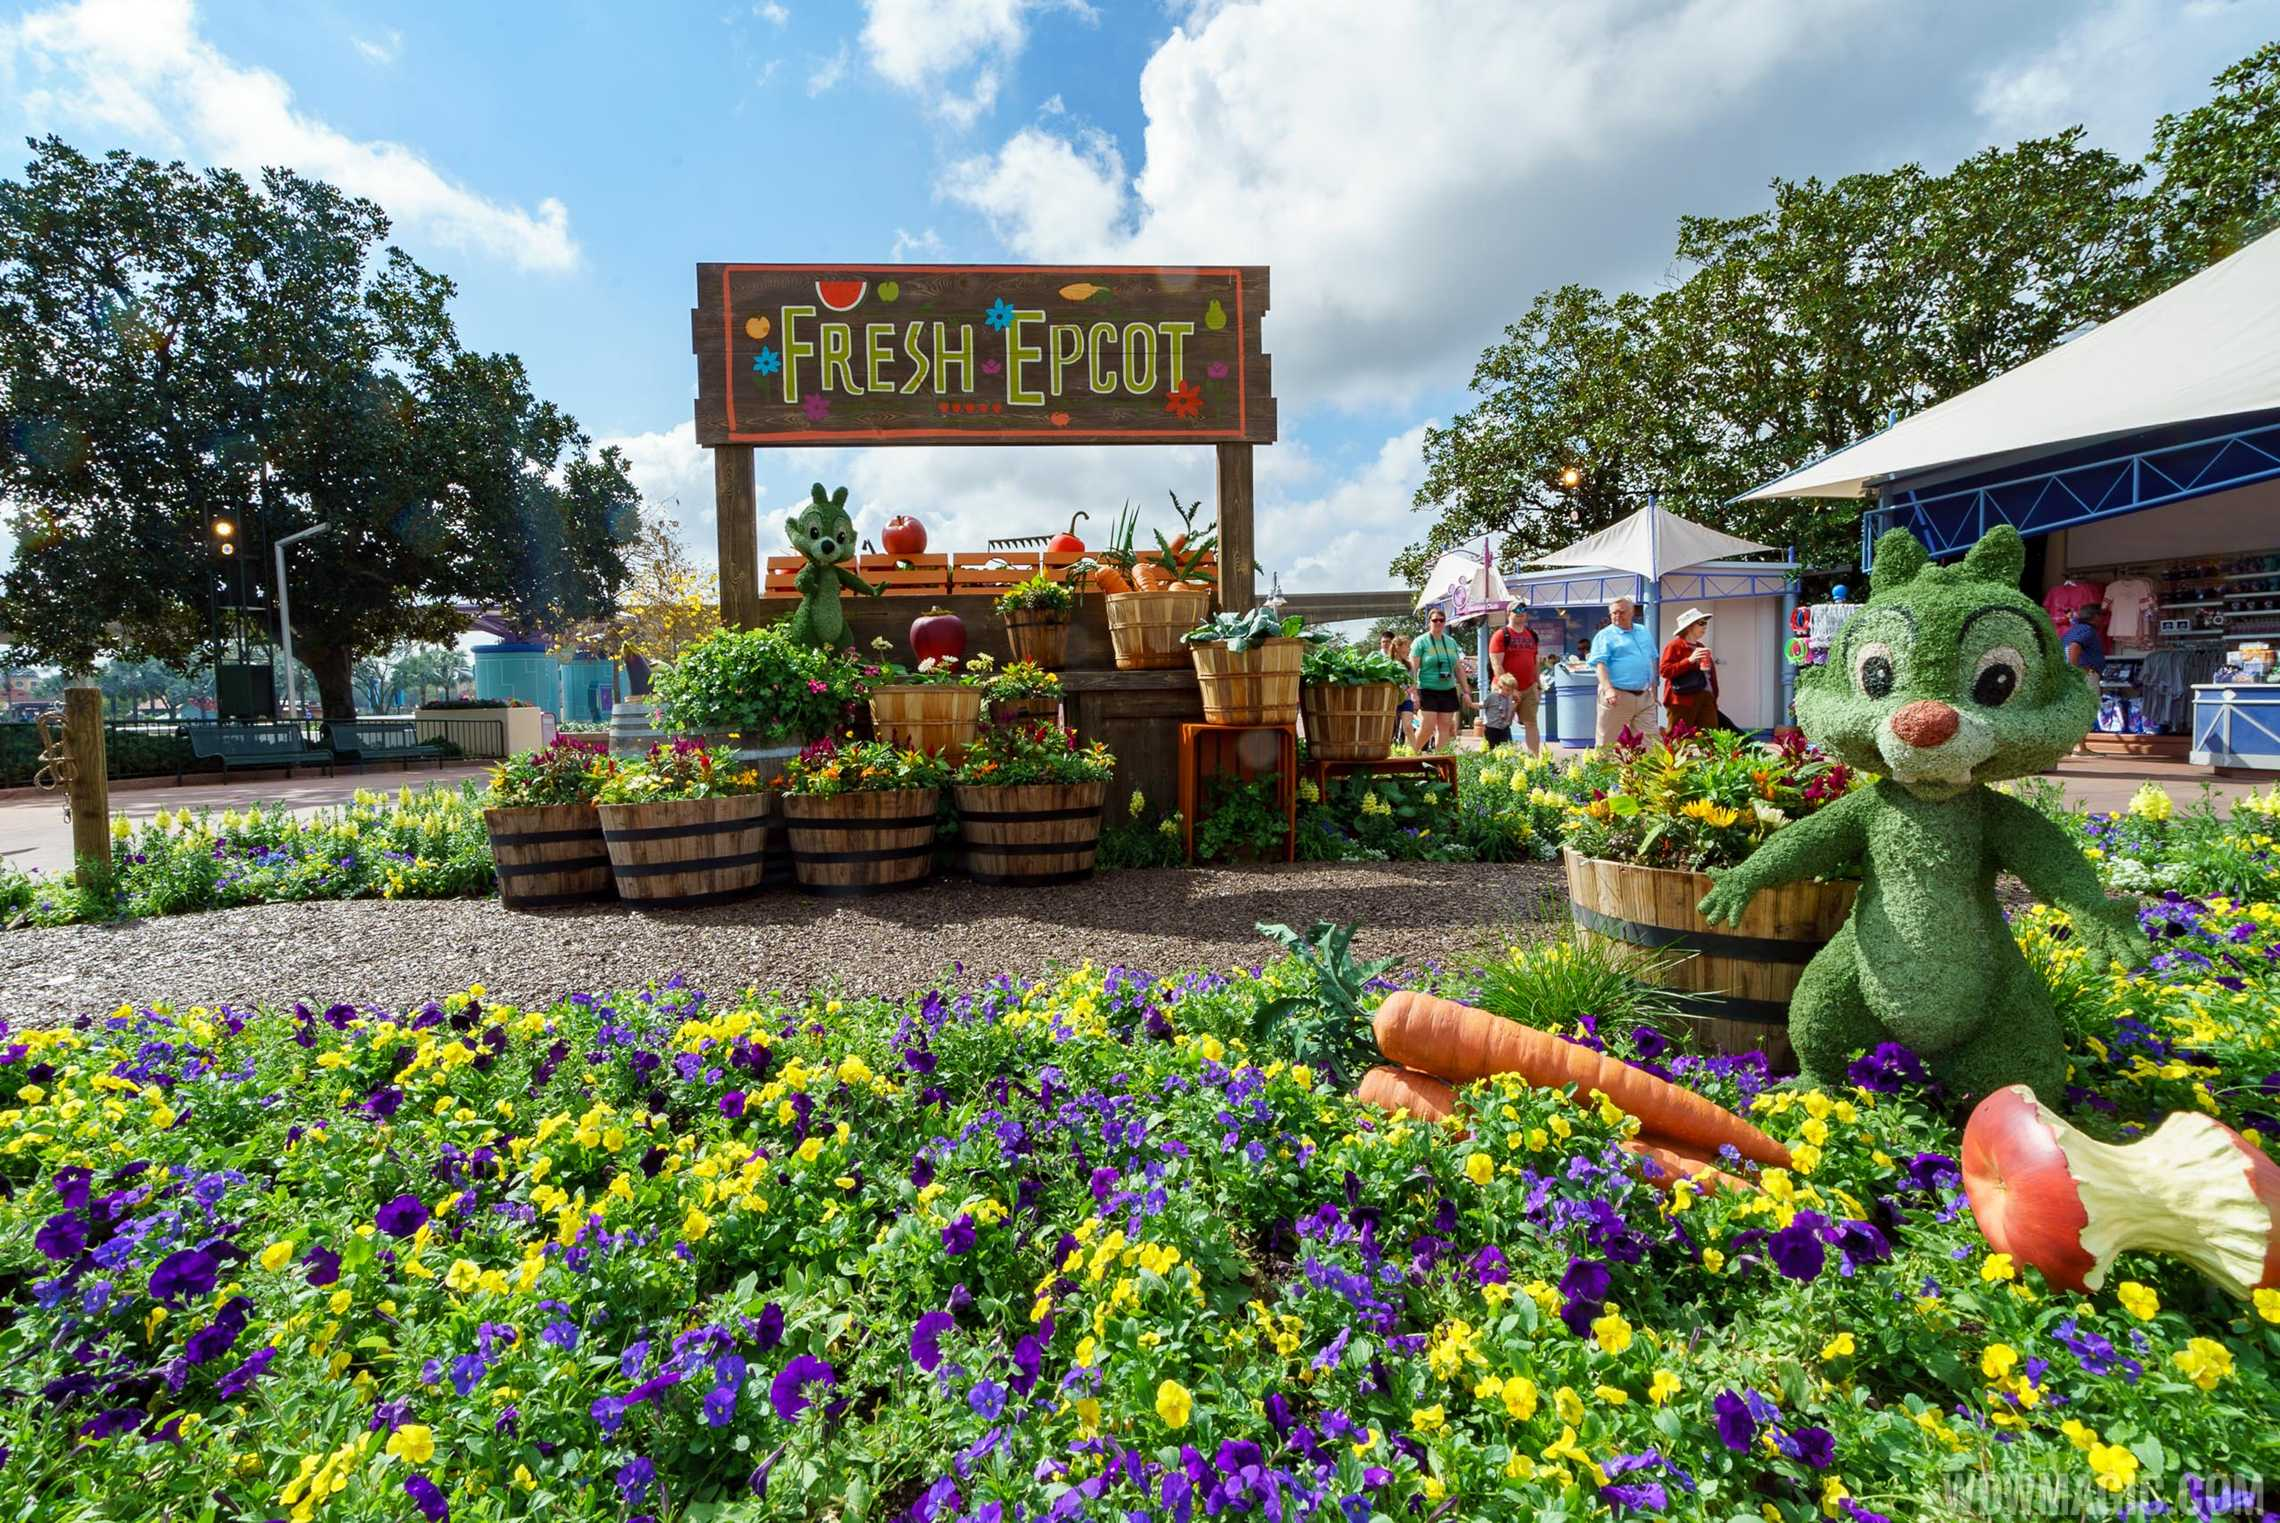 2017 Epcot International Flower And Garden Festival Topiary Tour Photo 13 Of 58